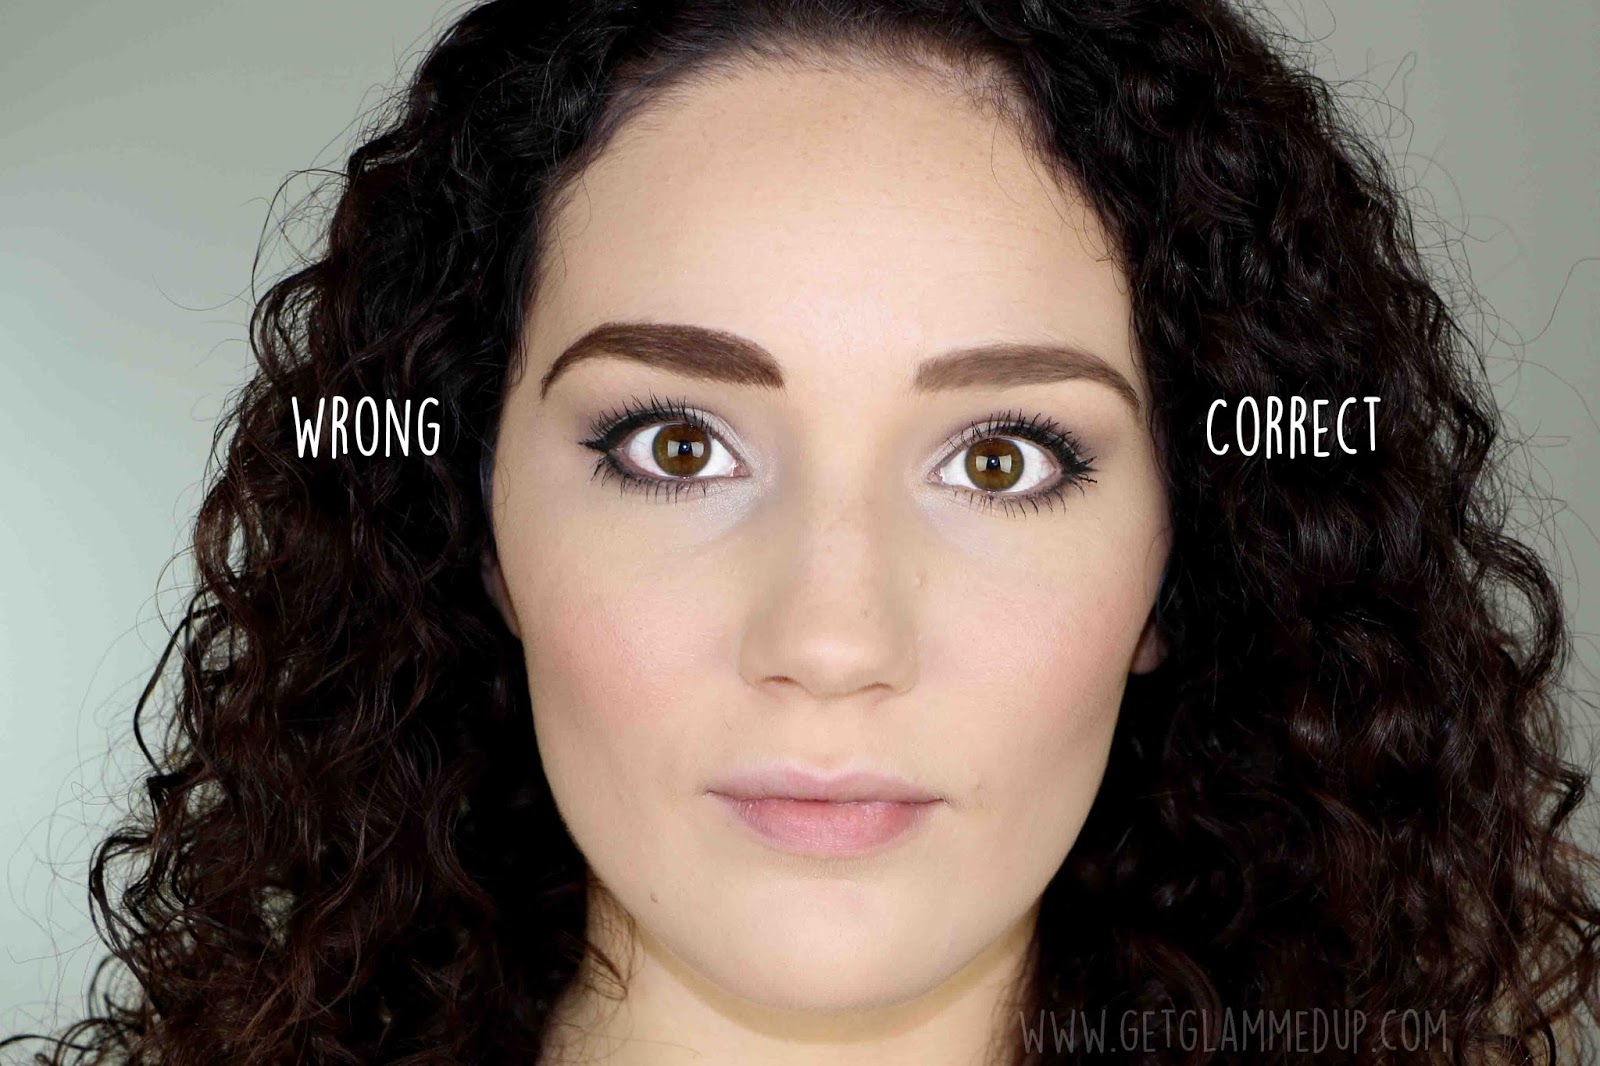 7 Overfilling In Your Brows The Key To Filling In Your Brows Is  Mimicking Natural Brow Hairs If You're Using A Pencil, Use One That Is  Very Tiny And